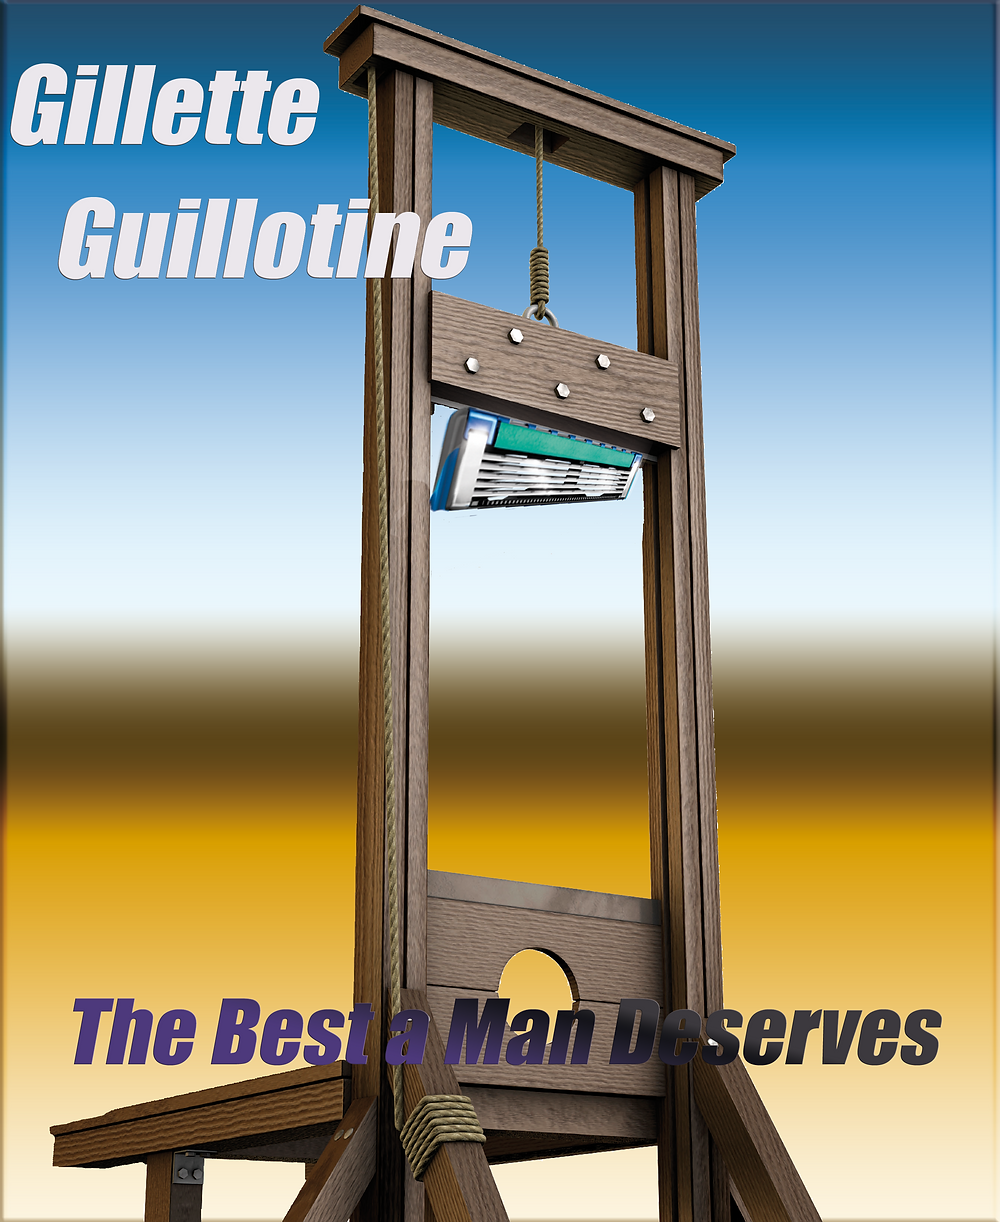 Gillette Guillotine the best a man deserves